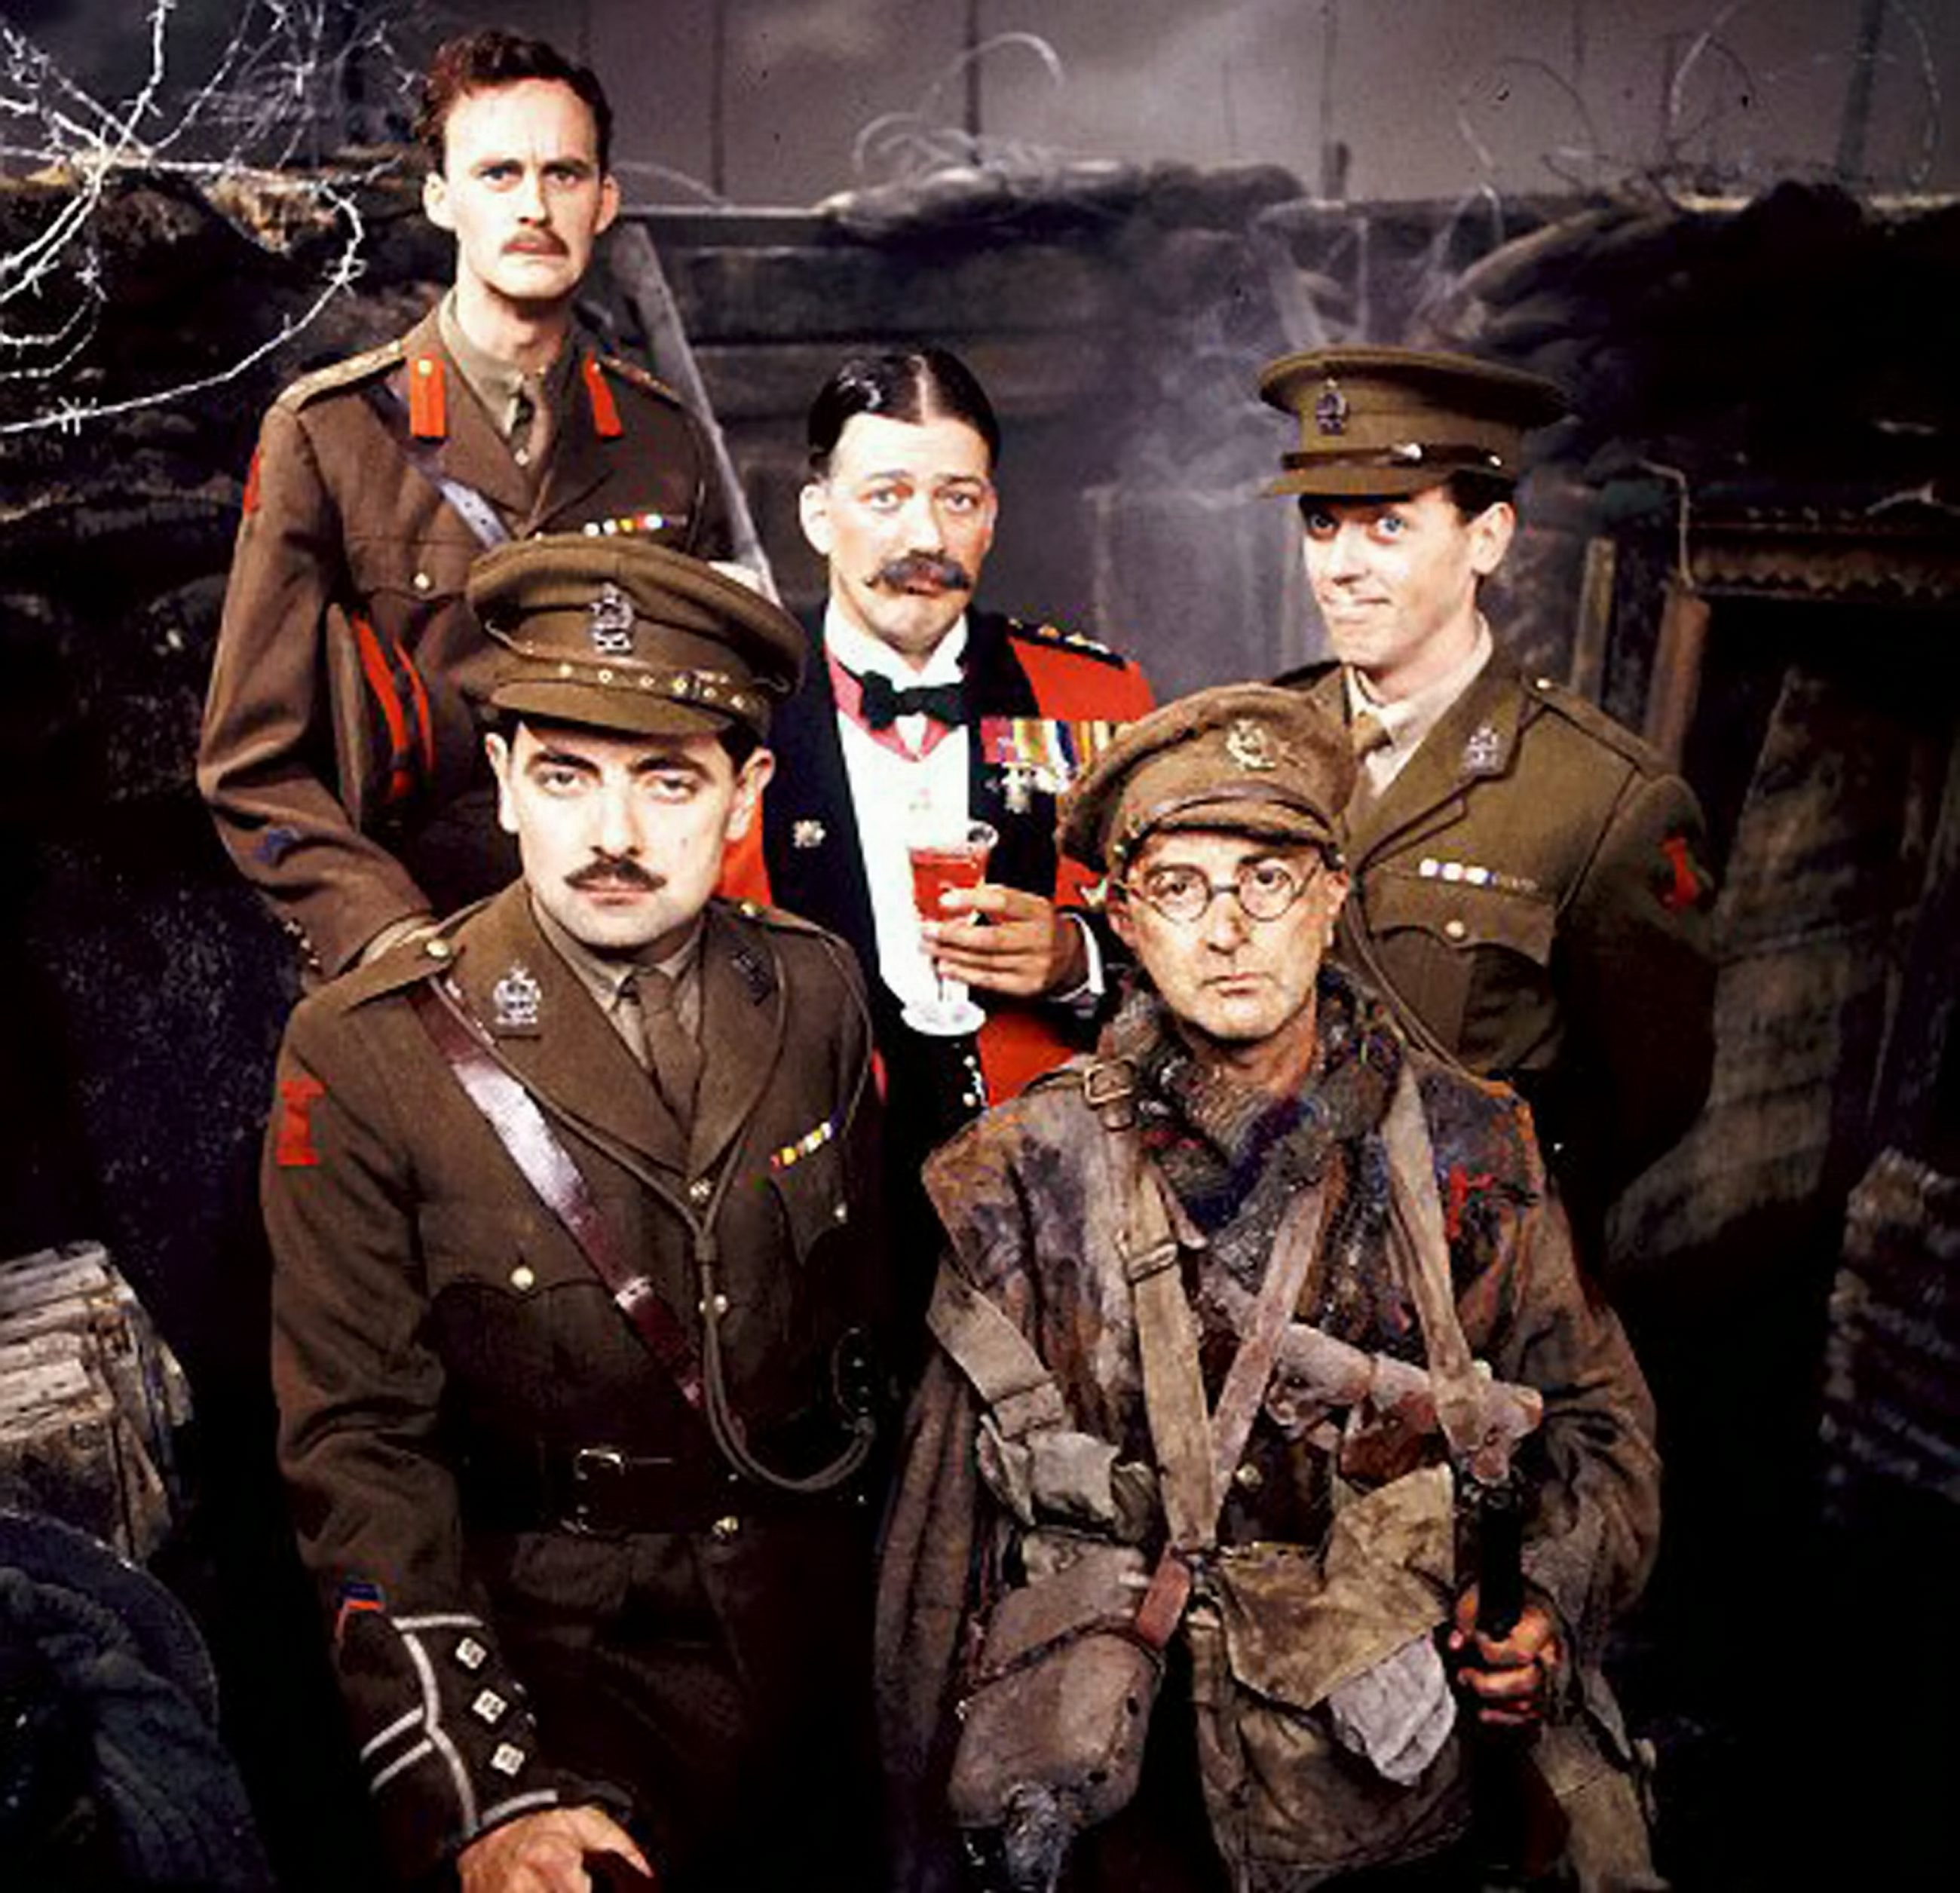 Tony Robinson played penny-pinching Baldrick in Blackadder, alongside Tim McInnerny, Stephen Fry, Hugh Laurie and Rowan Atkinson